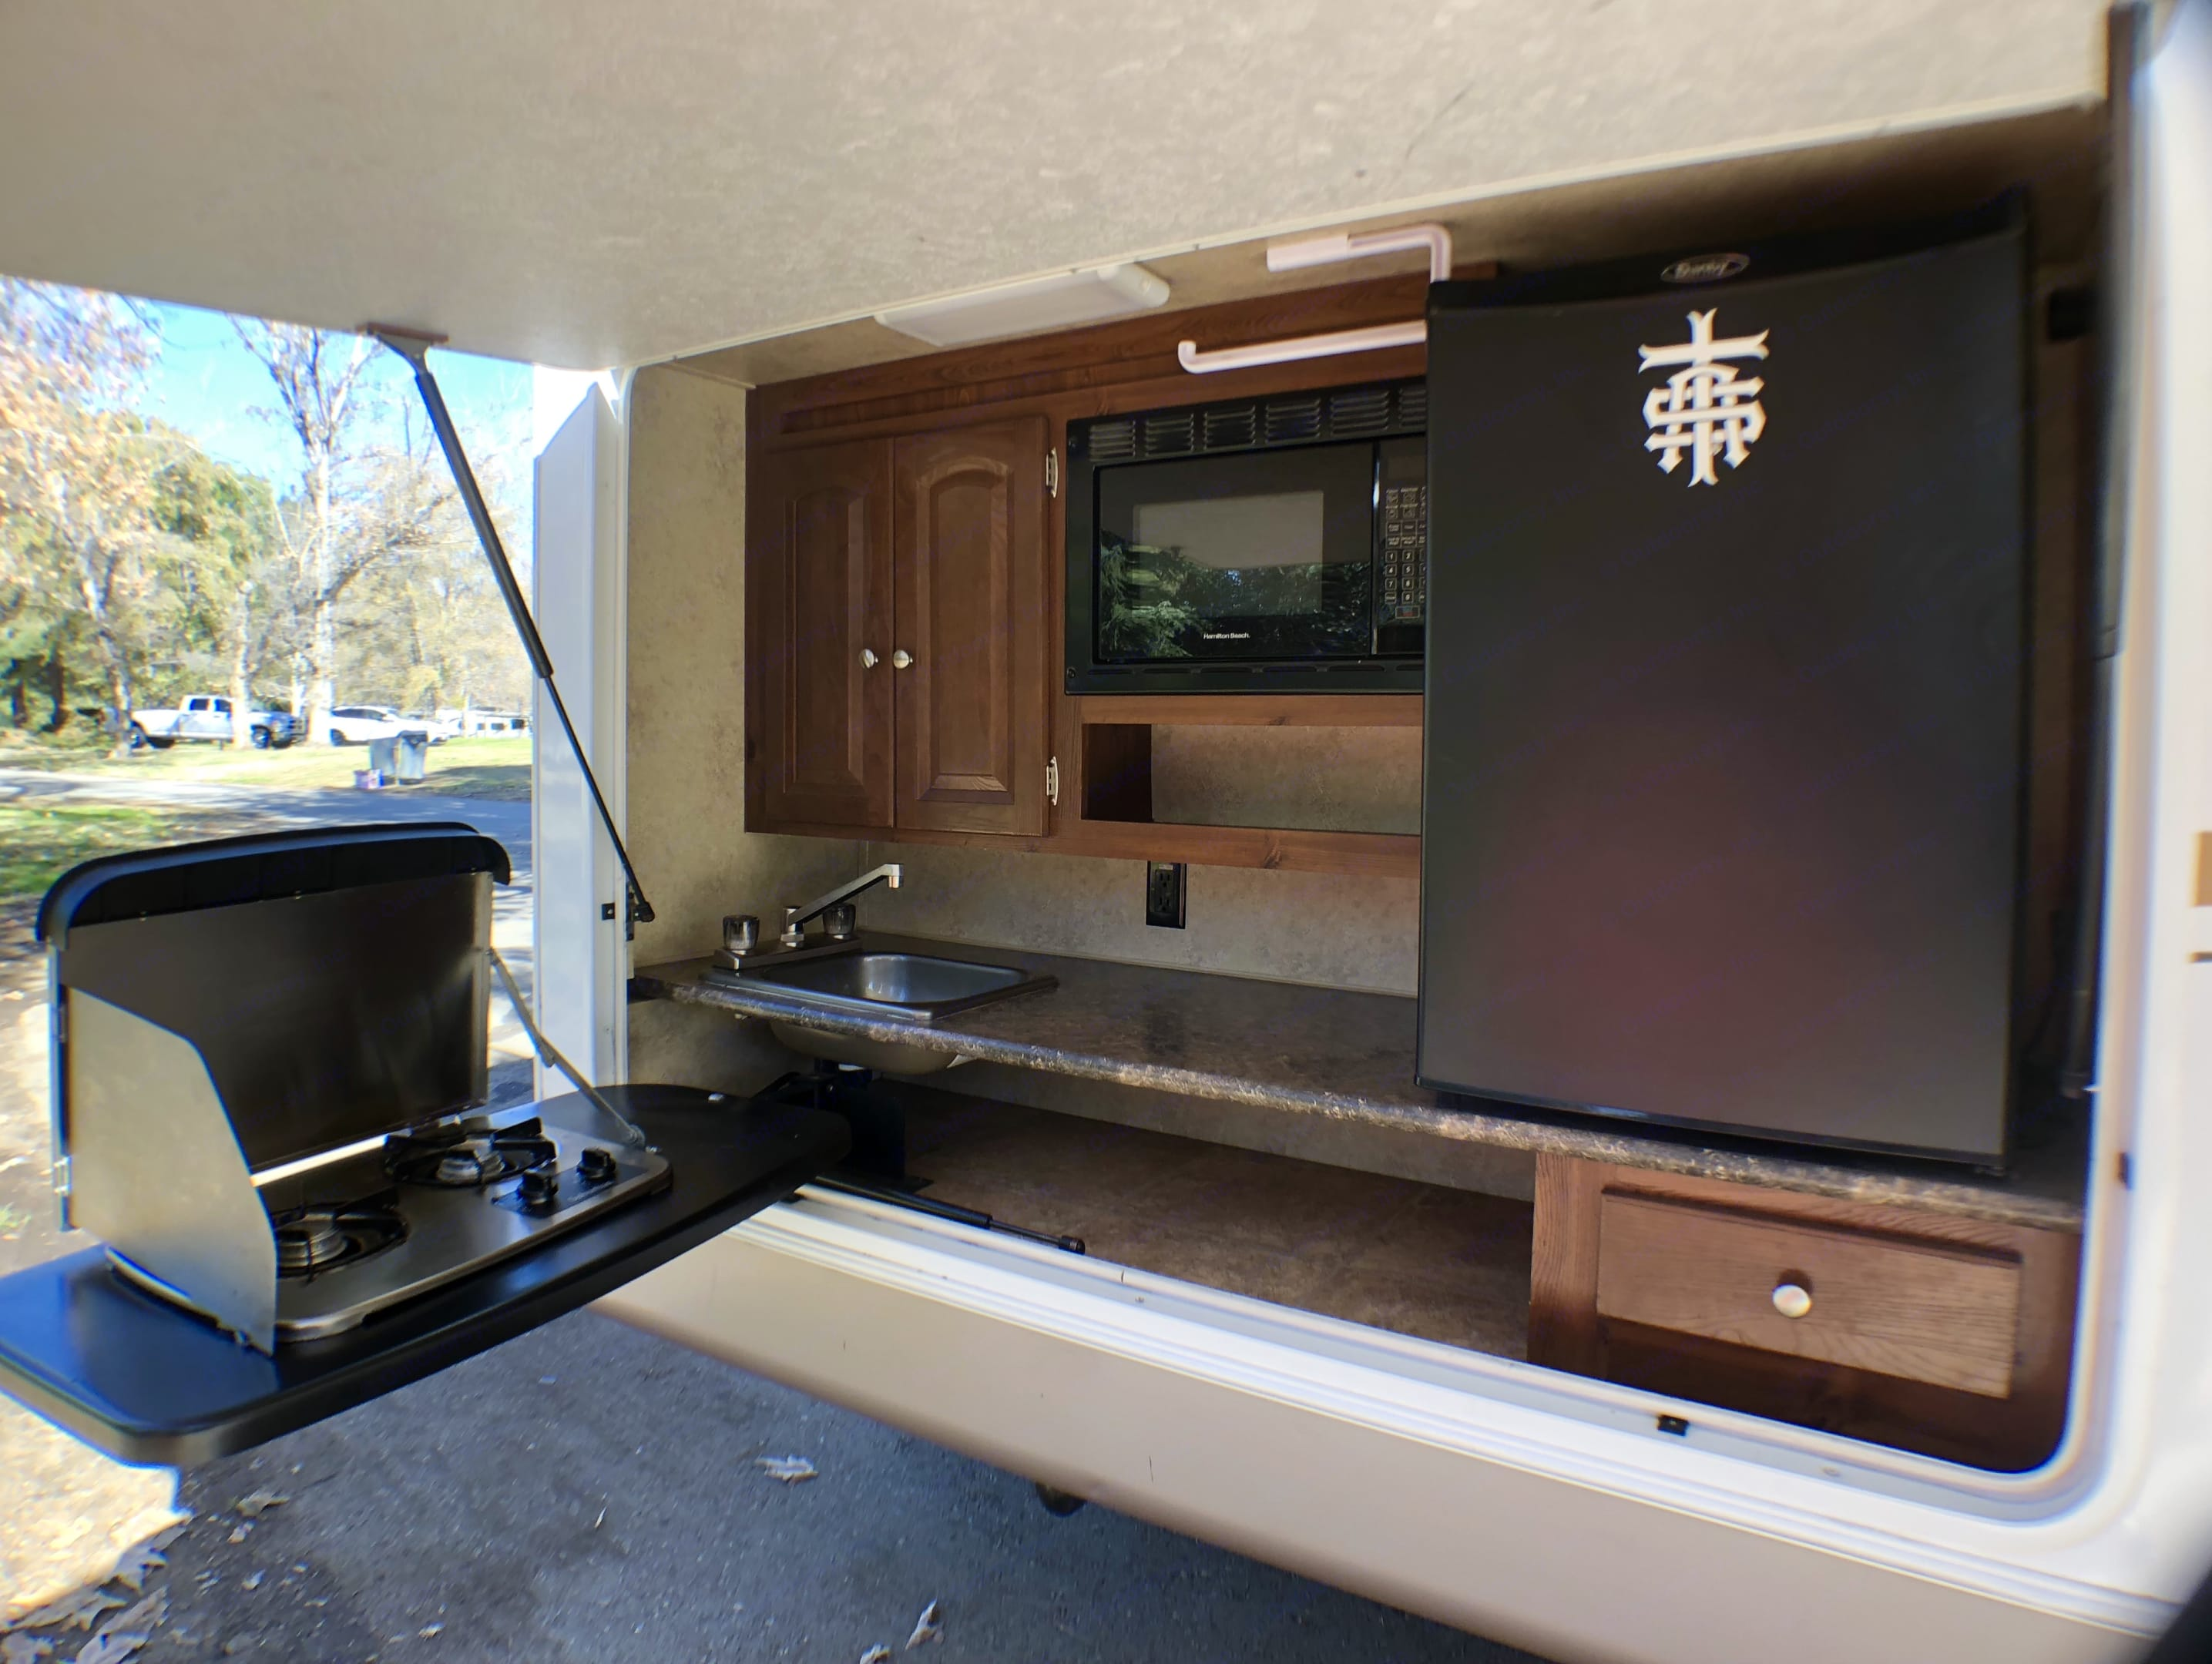 Outdoor kitchen With 2 burner stove, sink, microwave and large fridge.. Flagstaff Super Lite 2011